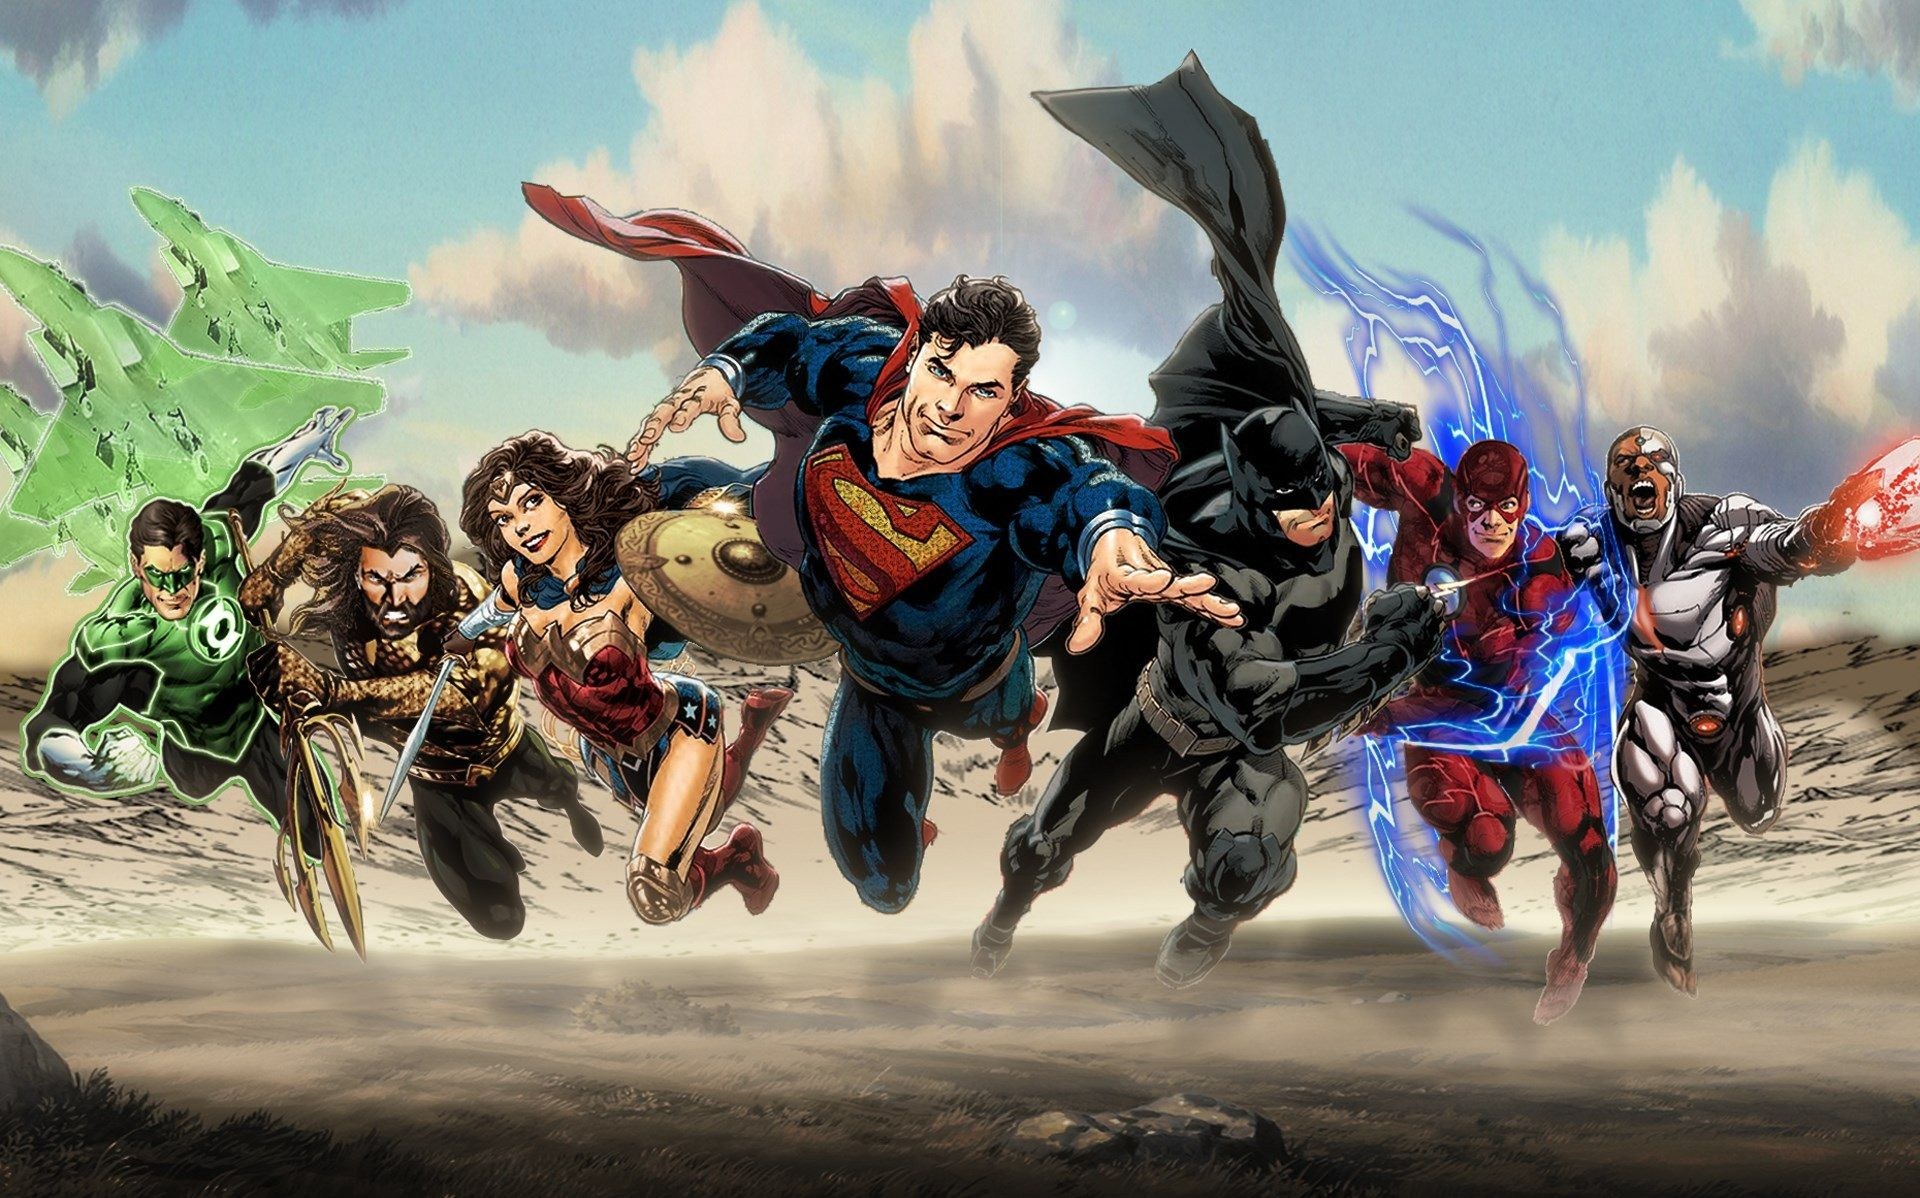 1920x1198 Justice League Hd Wallpaper Widescreen Dc Comics Superheroes Dc Comics Characters Justice League Superheroes